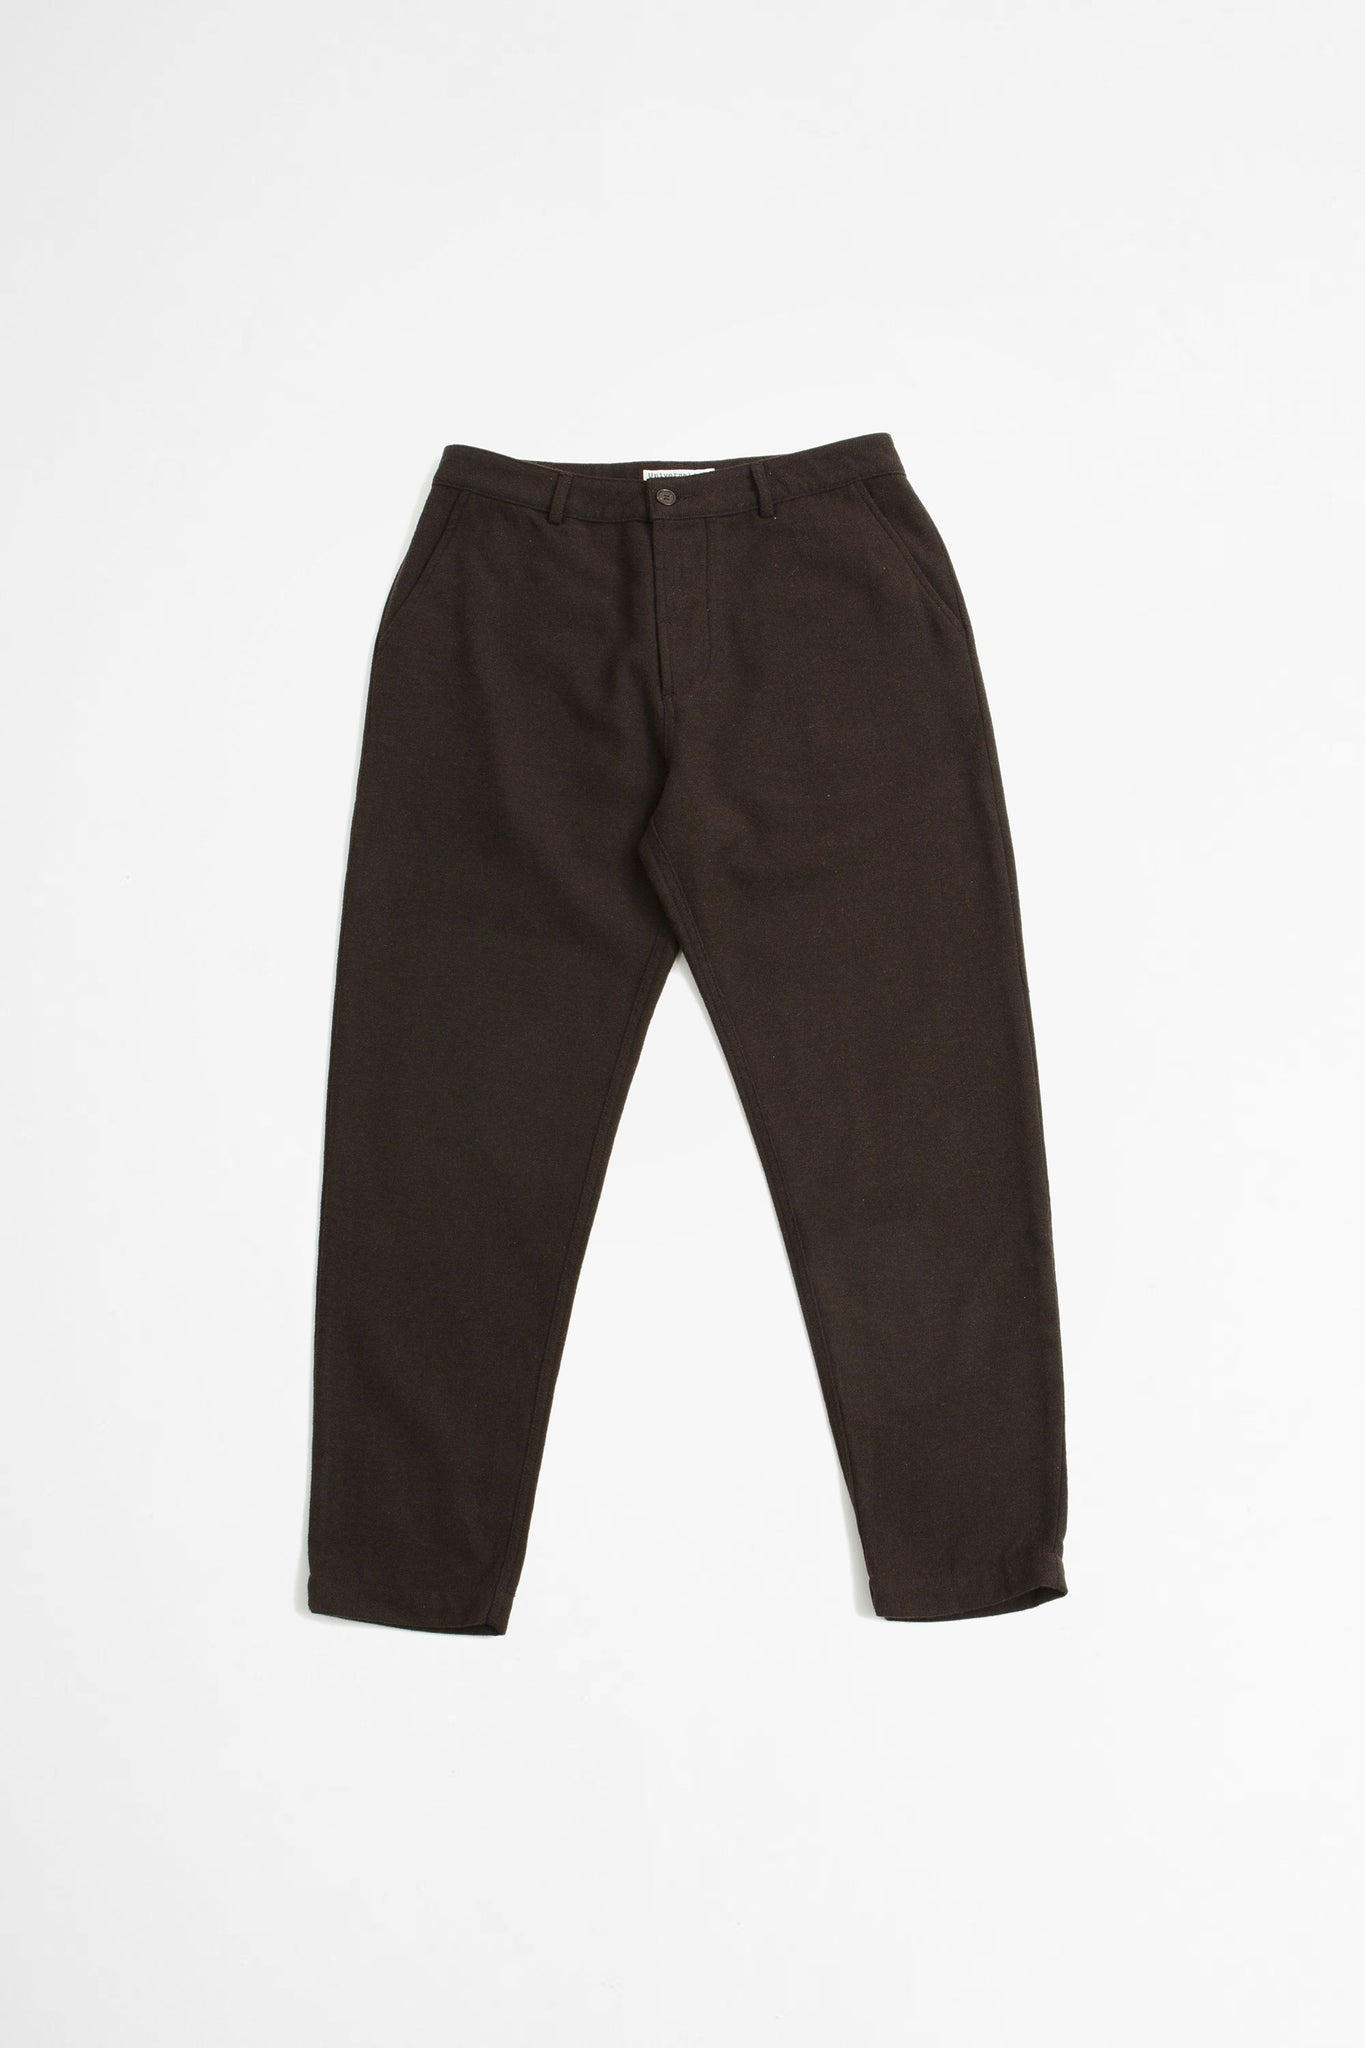 Military chino wool marl II chocolate